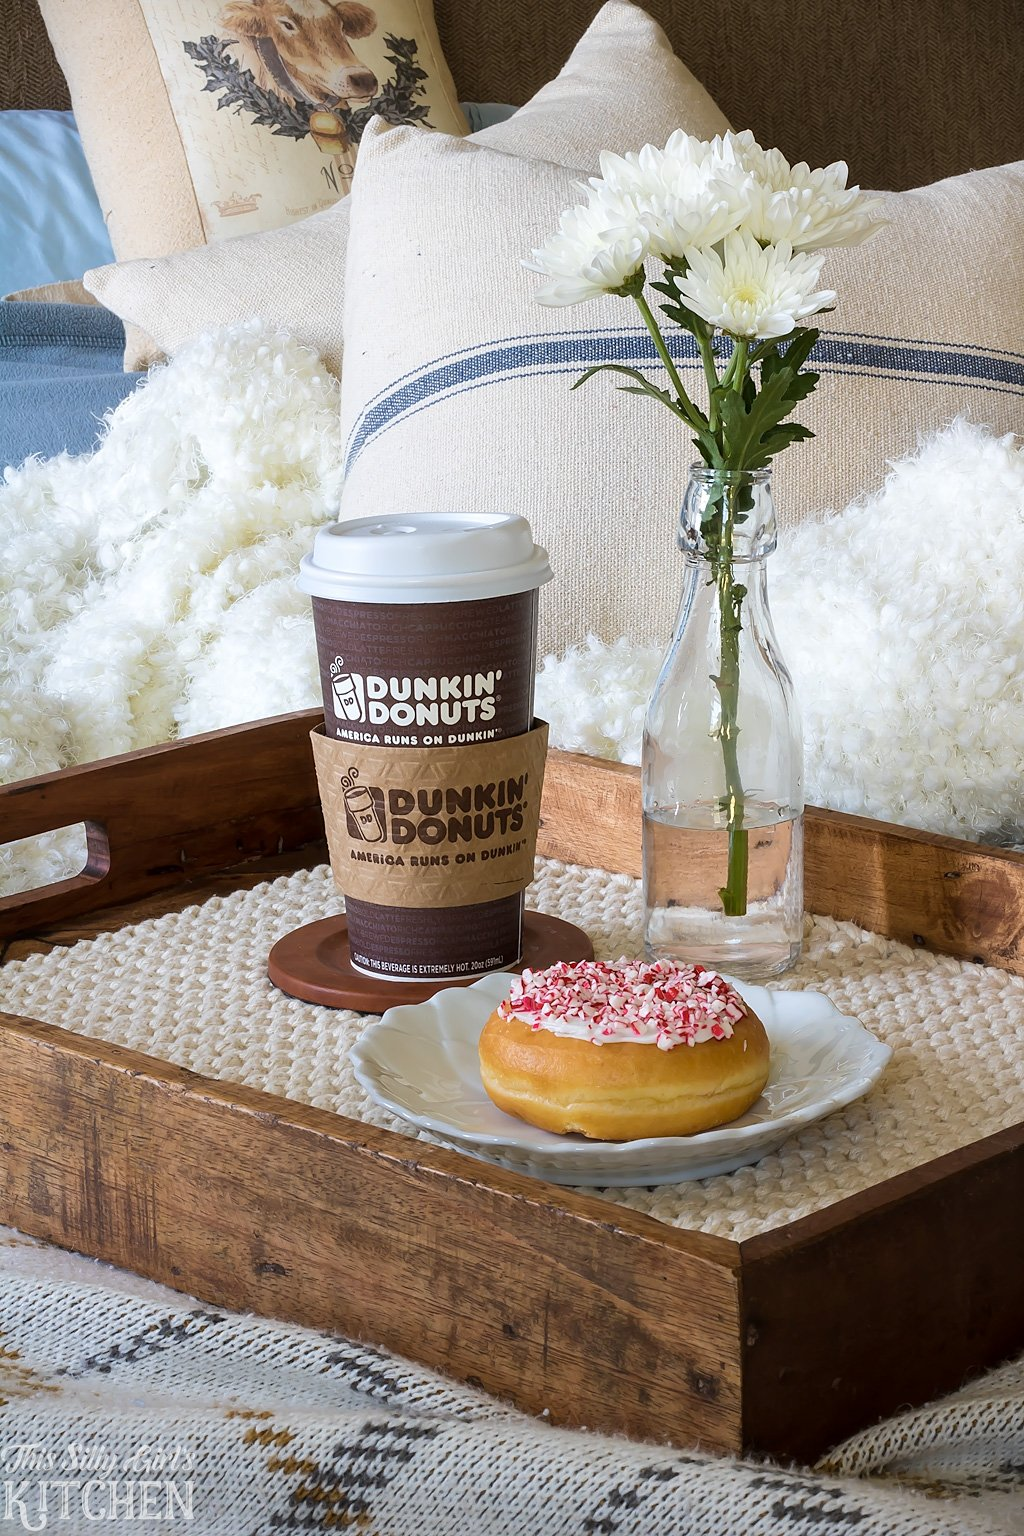 dunkin-donuts-salted-caramel-latte-from-this-silly-girls-kitchen-4